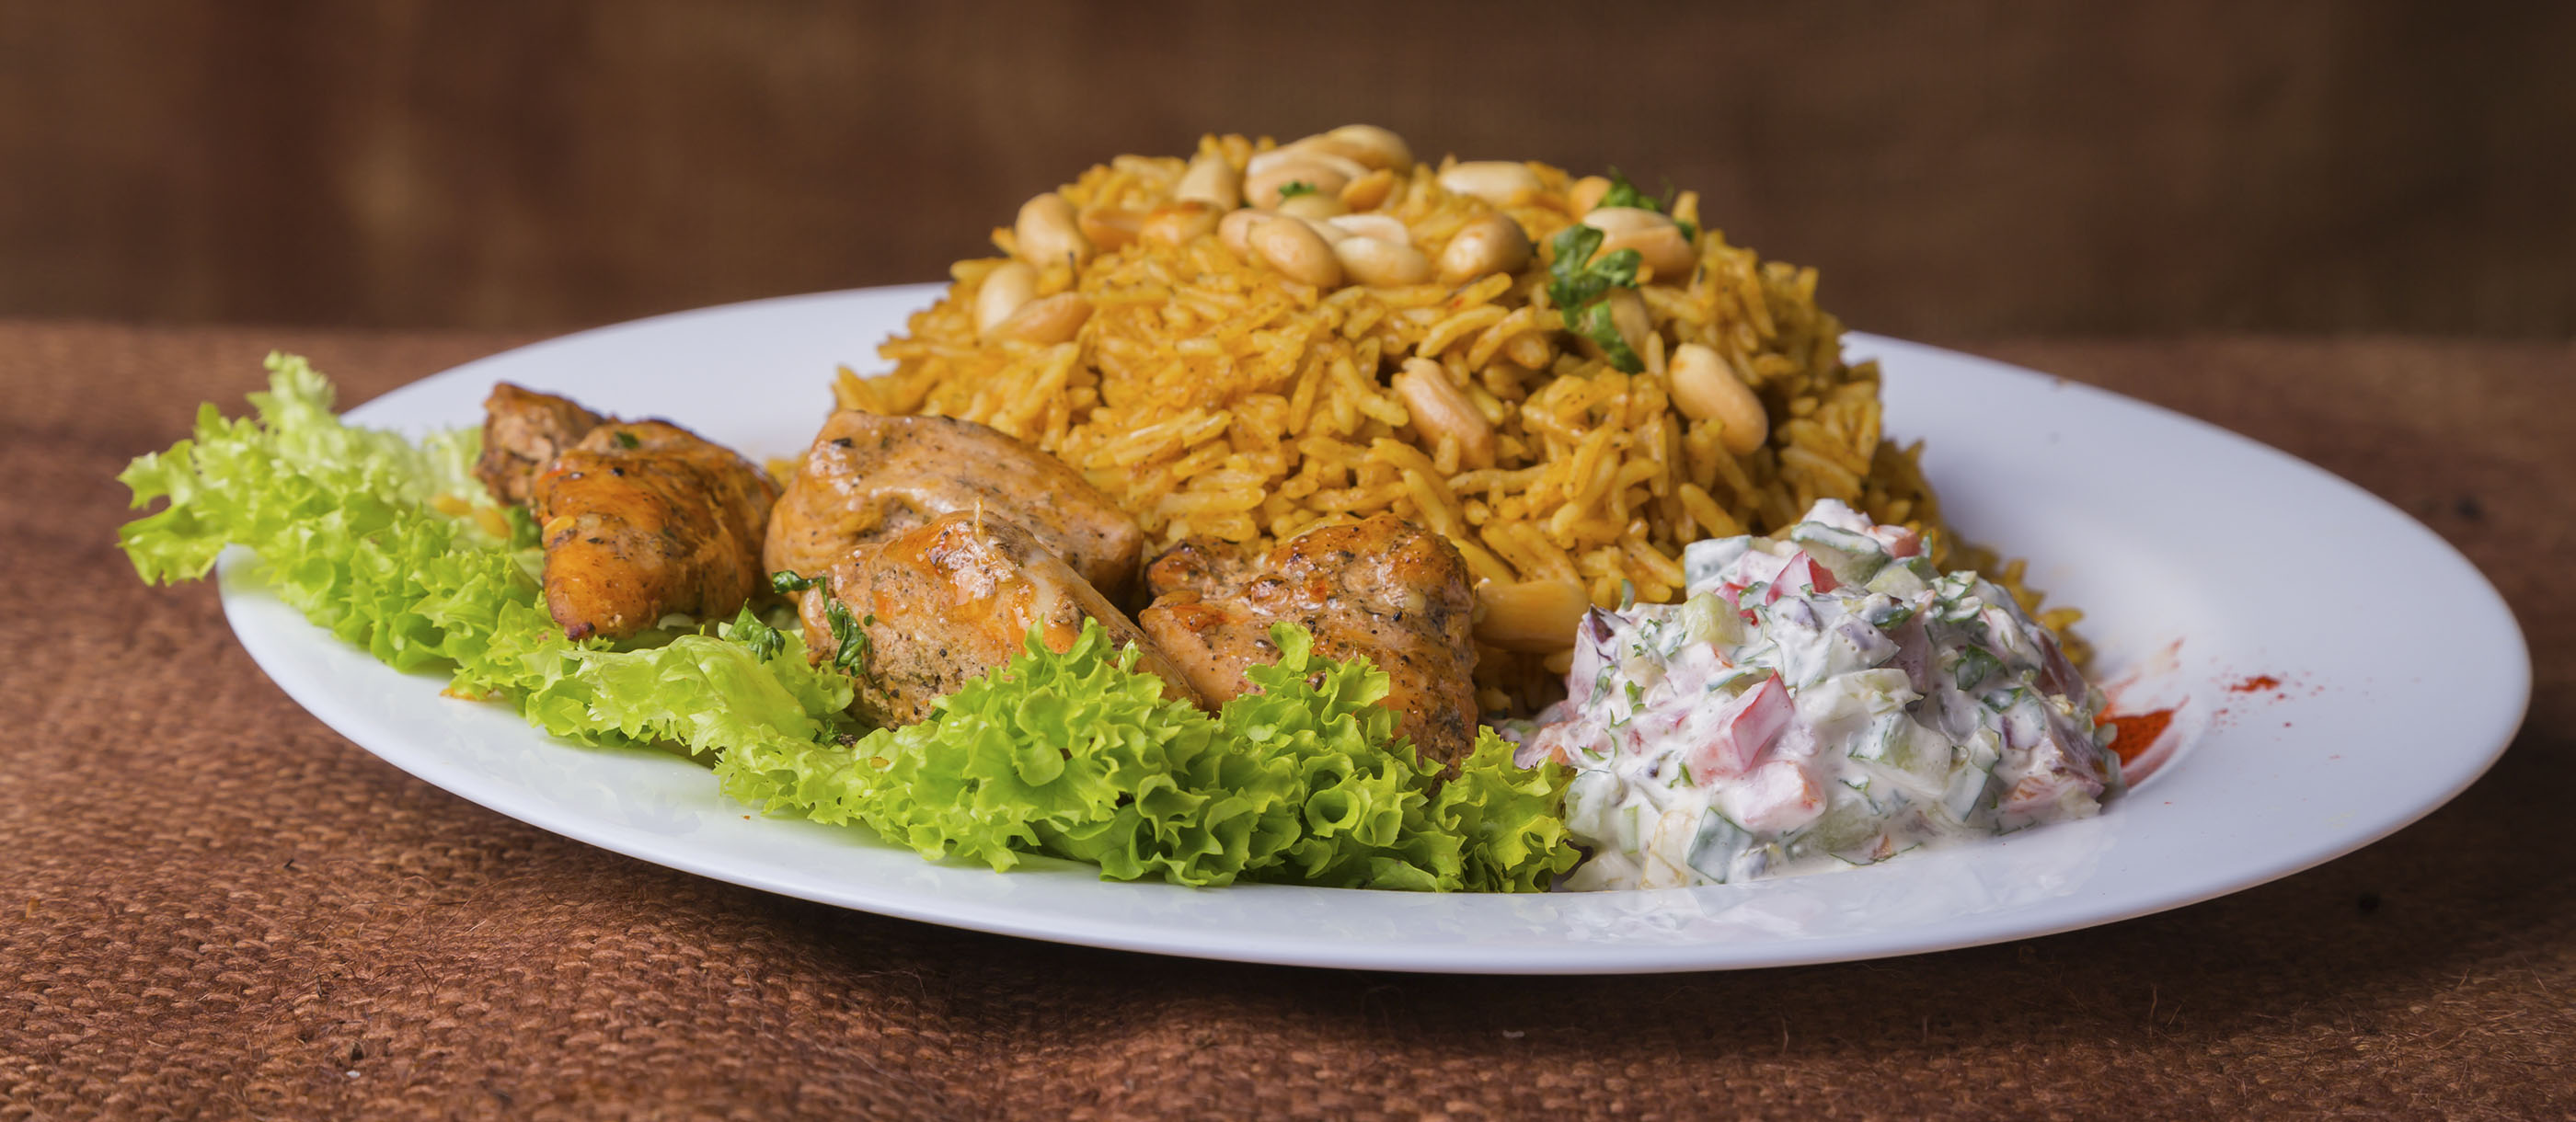 Kabsa Traditional Rice Dish From Saudi Arabia